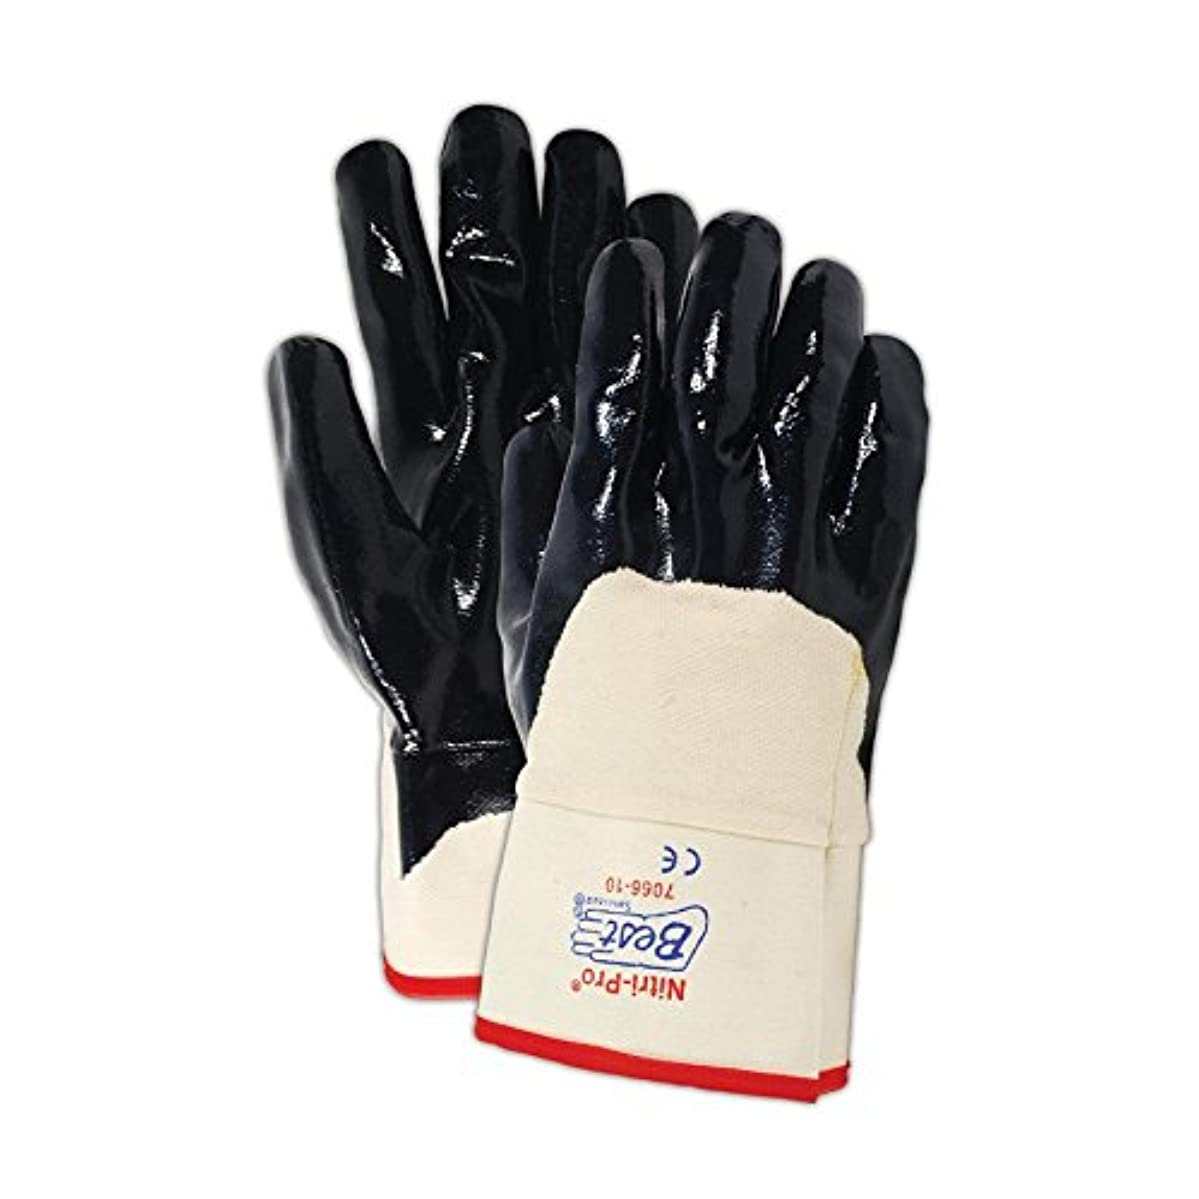 SHOWA 7066 Palm-Coated Nitrile Glove, Smooth Grip, Cotton Jersey Liner, Reinforced Safety Cuff, General Purpose Work, Large (Pack of 12 Pairs)